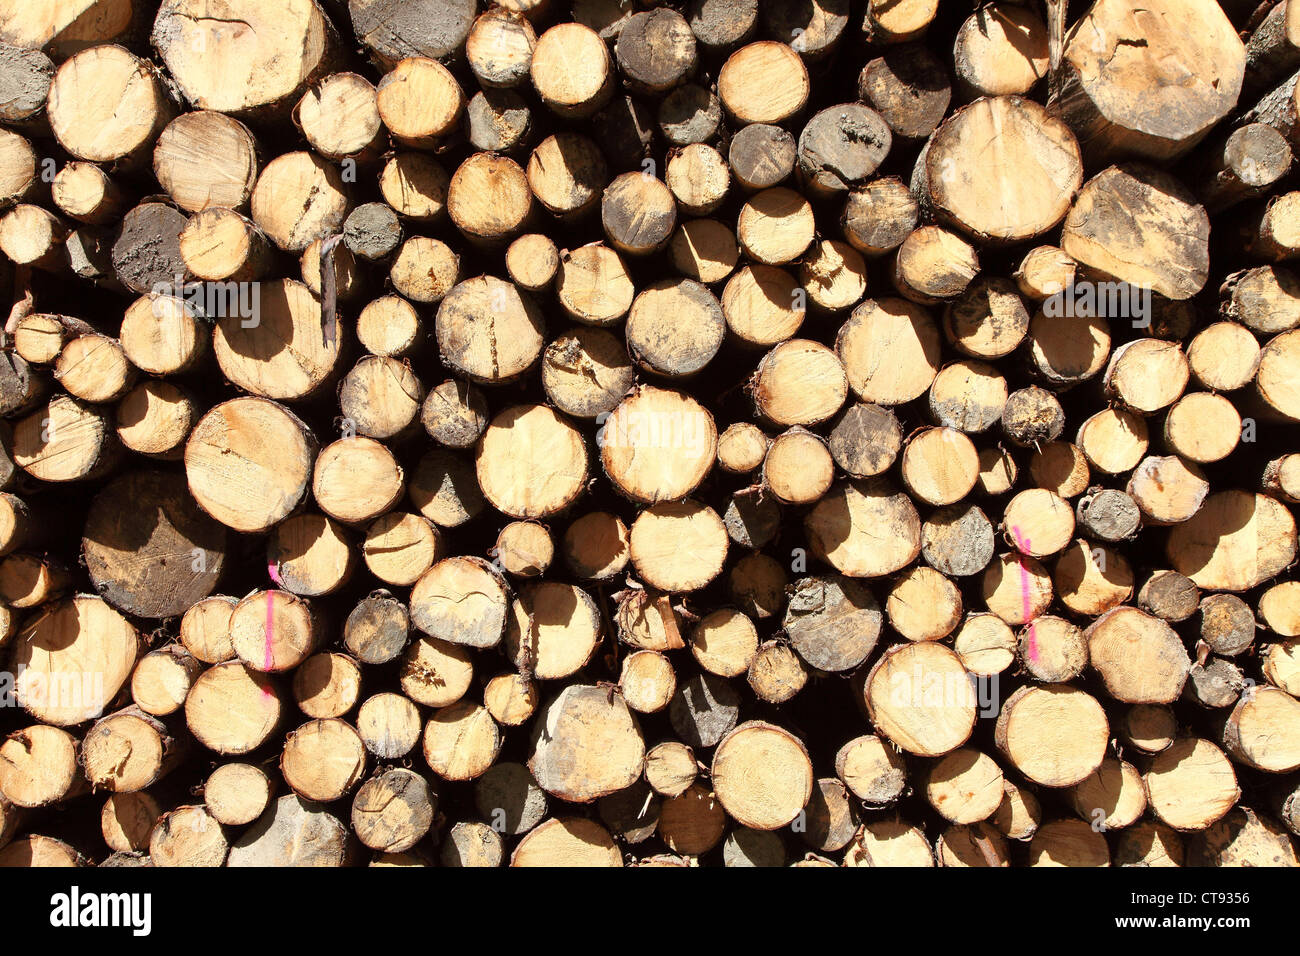 Woodpile in a forest. Stacked tree trunks, ready to be transported to a sawmill. Stock Photo